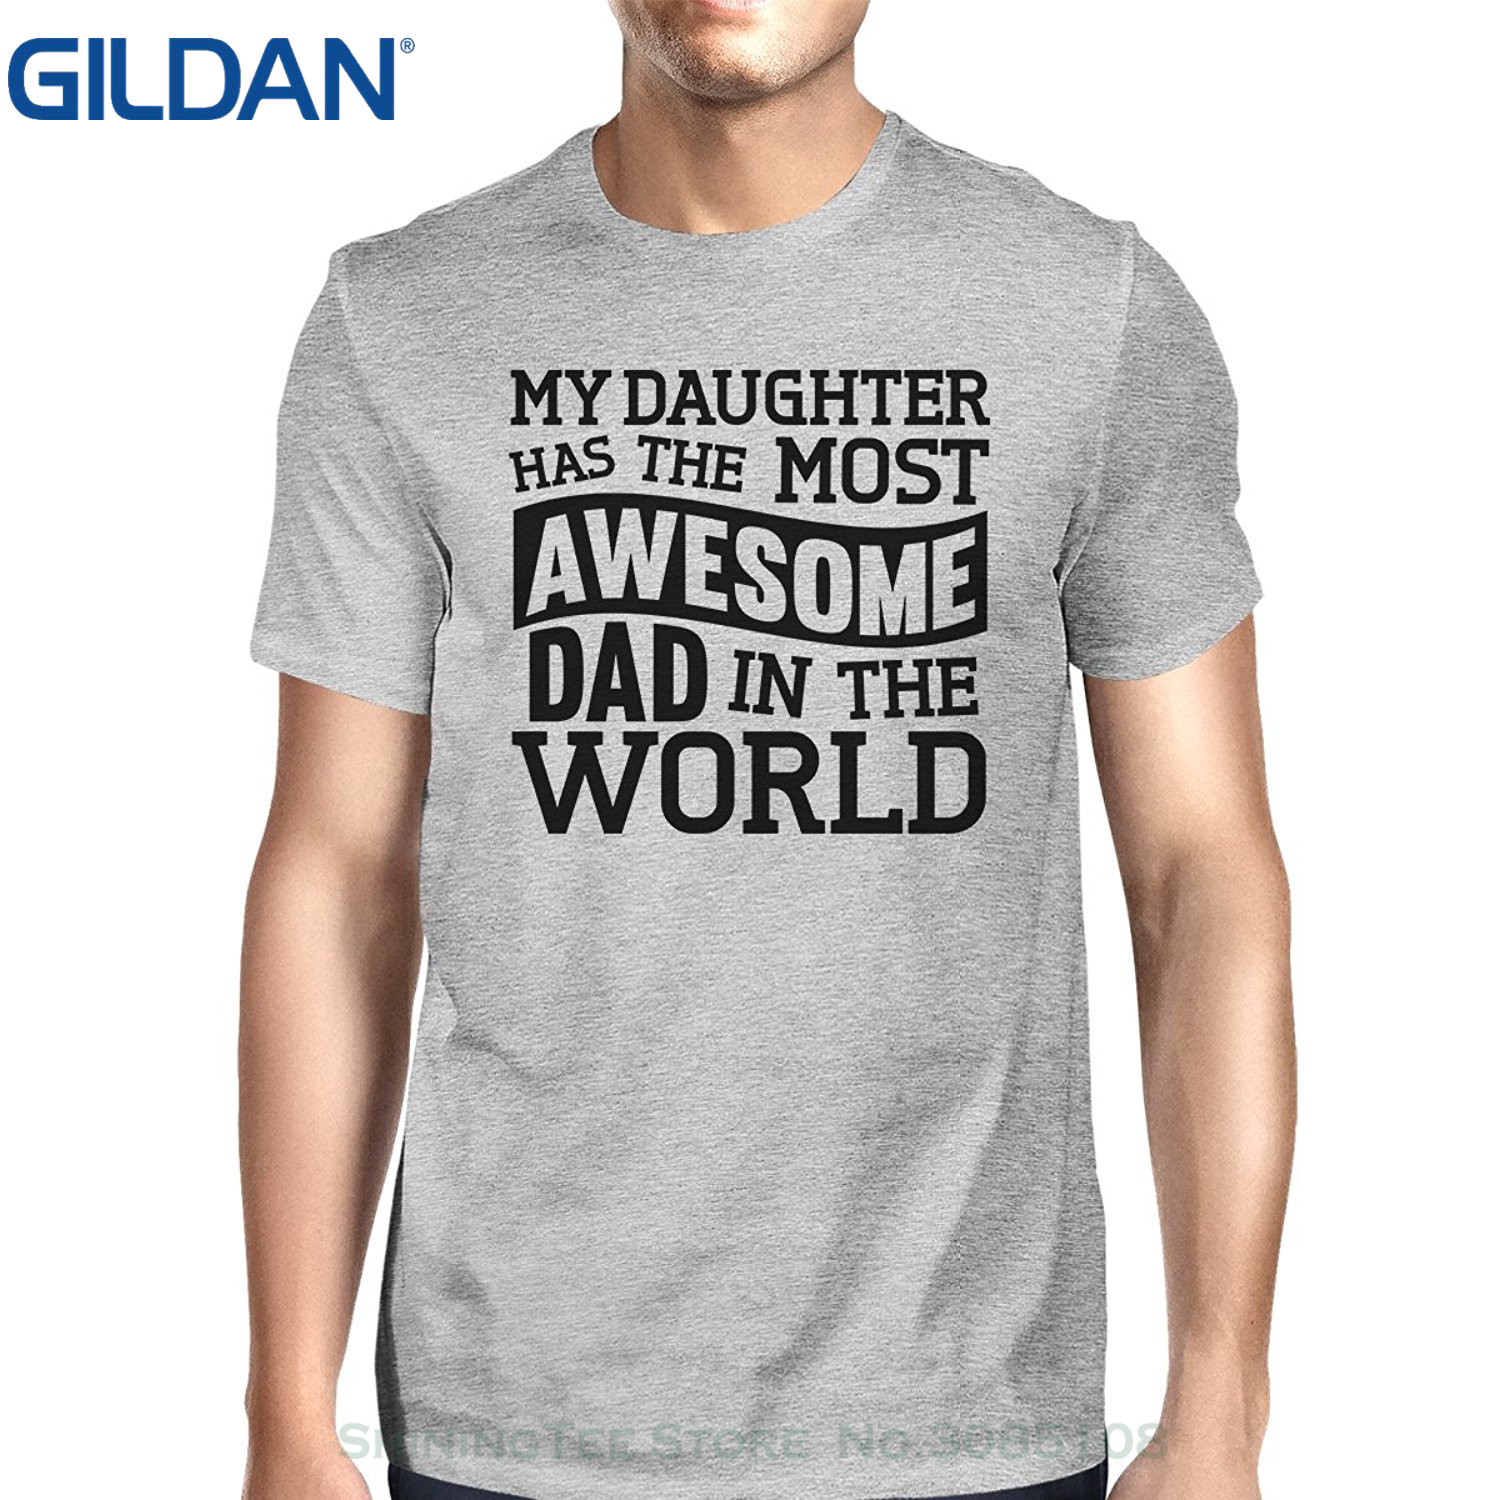 GILDAN New Fashion Cool Casual T Shirts 365 Printing Happy Fathers Day Unique Design Tee For Men Unique Gifts For Dad